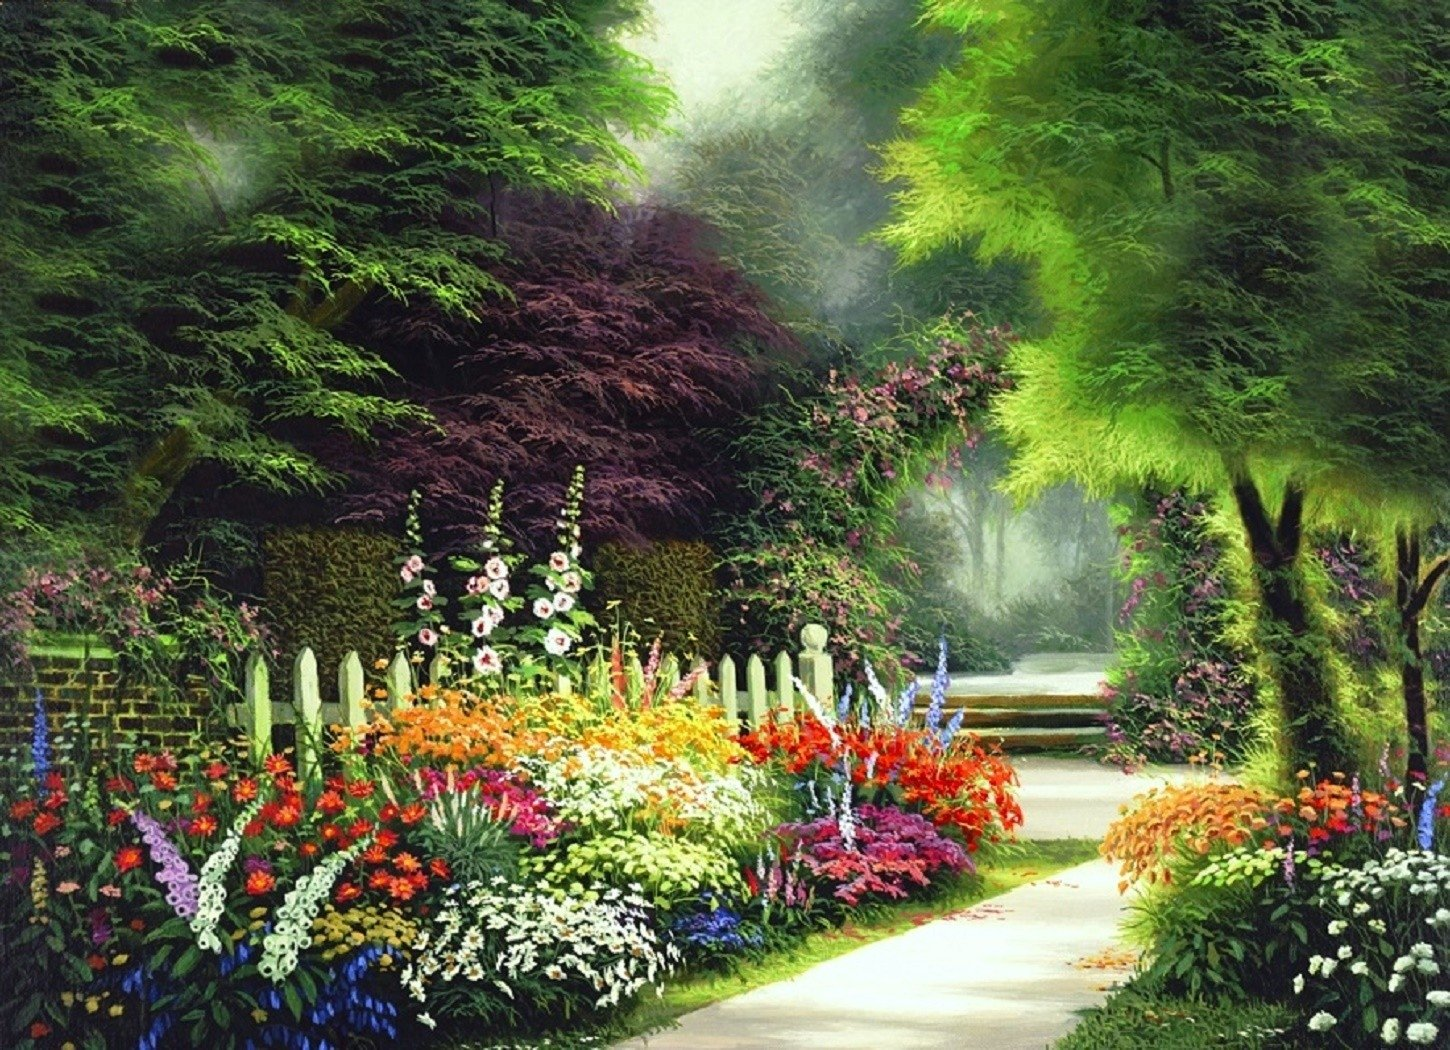 Hd wallpaper garden - Hd Wallpaper Background Id 687371 1450x1050 Artistic Garden